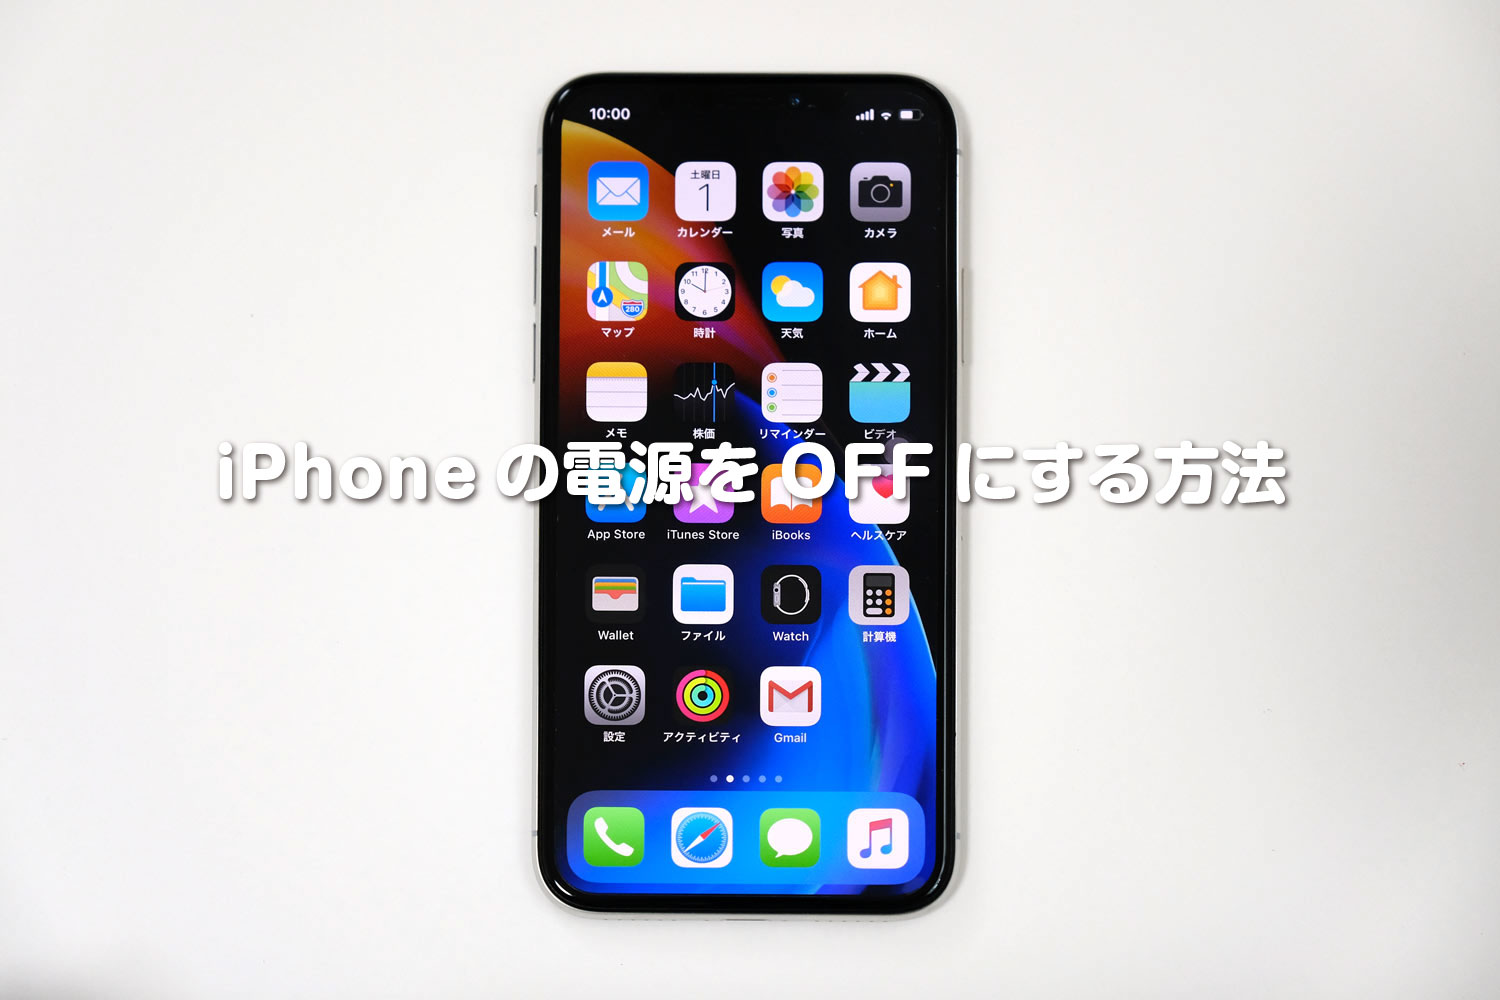 iPhone 電源OFFにする方法